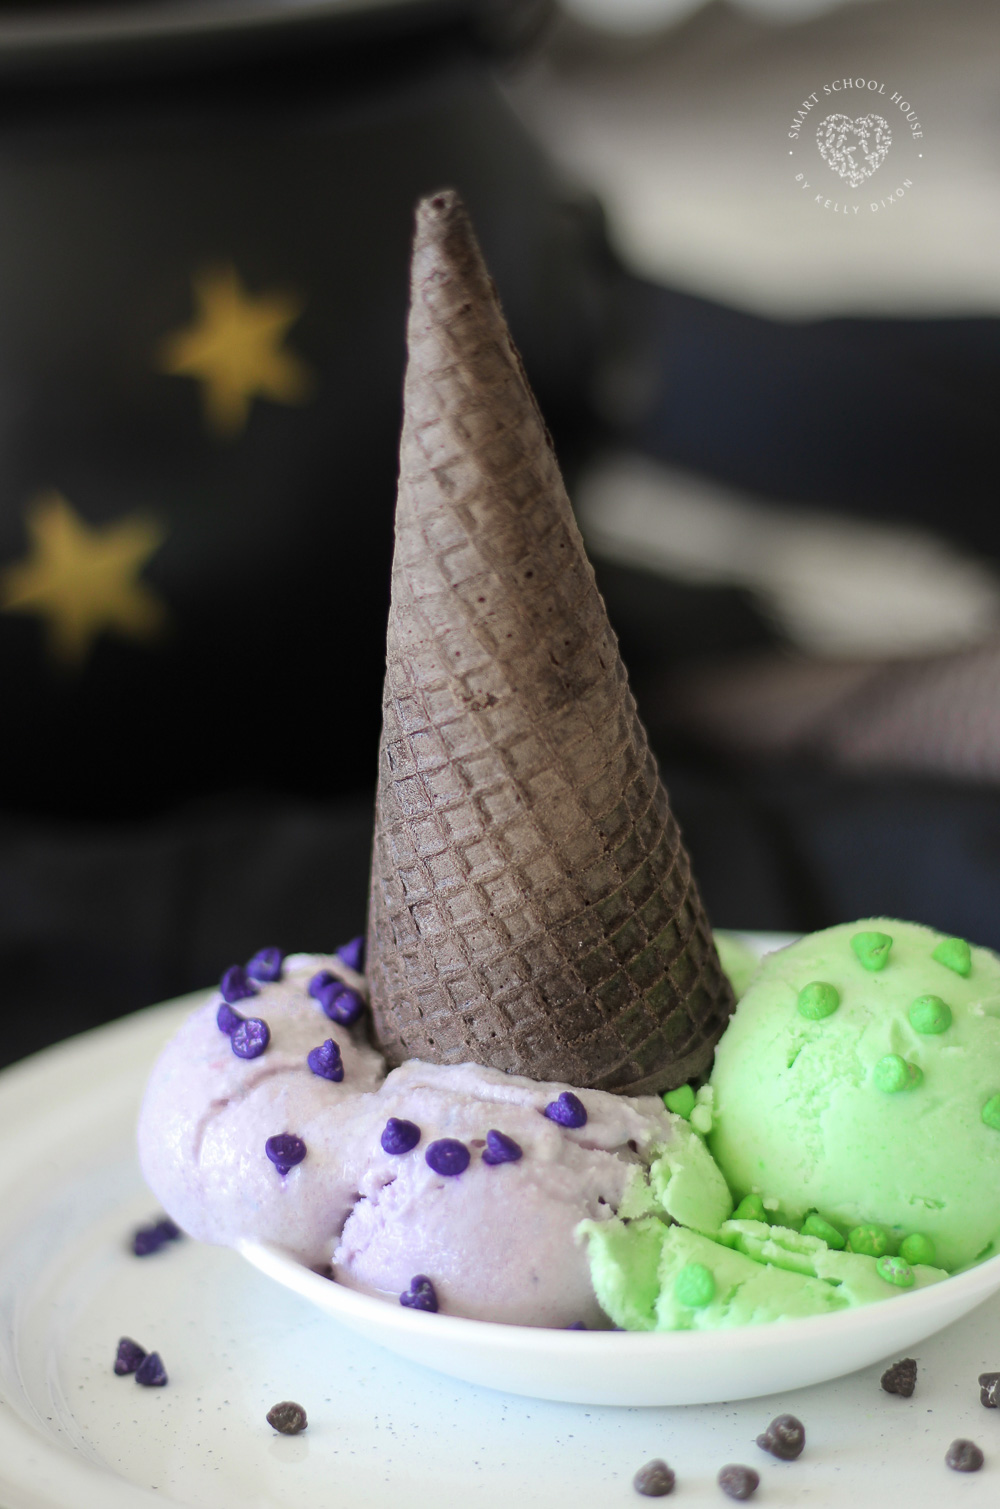 Halloween Ice Cream Made with Jello. The purple and green ice cream with the black cone reminds me of a witch! Fun and EASY dessert for Halloween. #Halloween #HalloweenFood #WitchIceCream #JelloIceCream #HalloweenDessert #Homemade